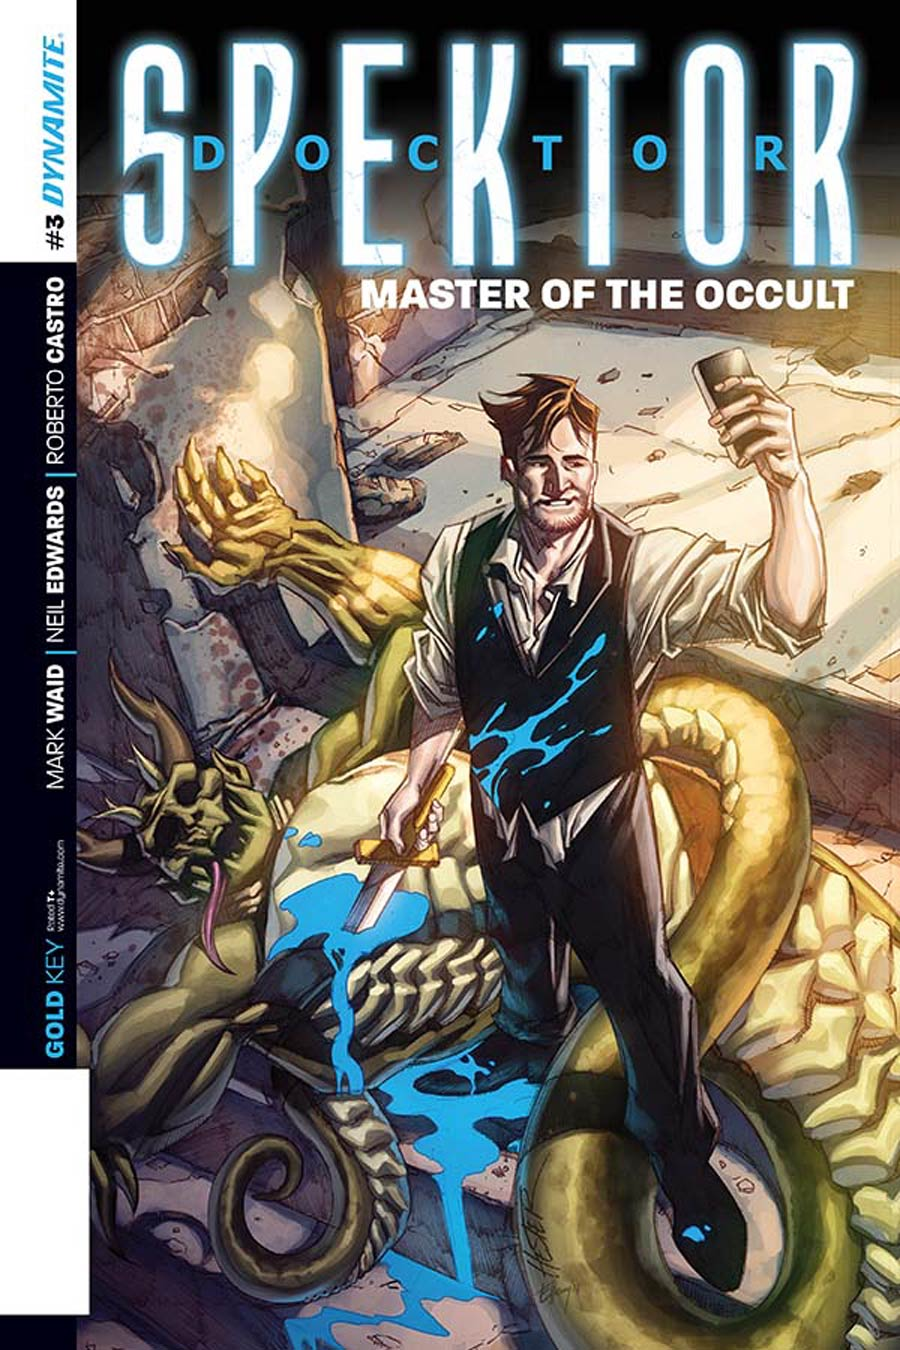 Doctor Spektor Master Of The Occult #3 Cover C Incentive Phil Hester Variant Cover